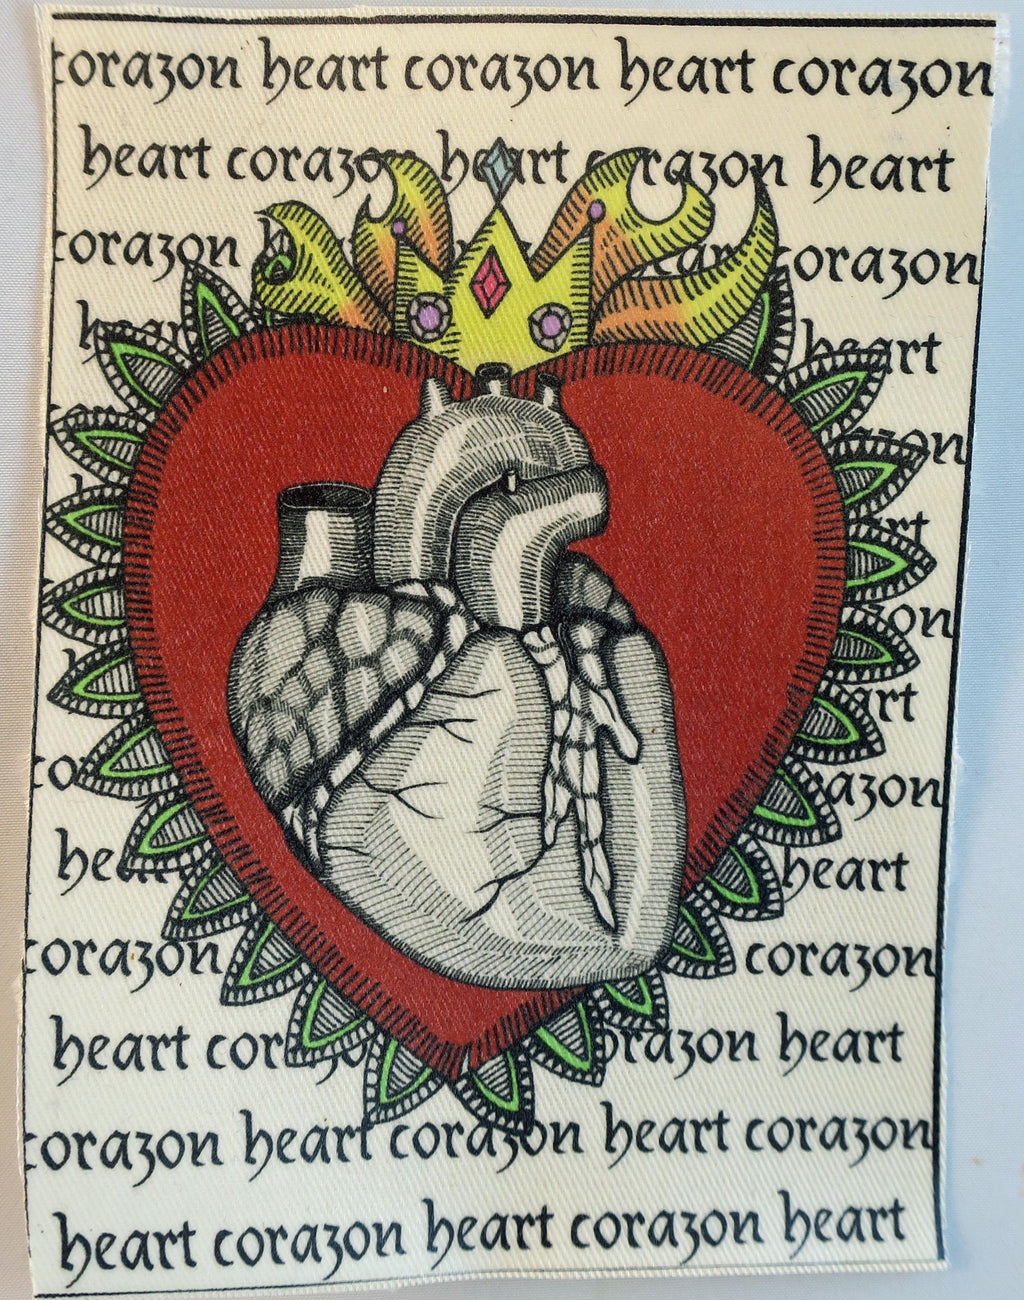 Corazon flaming heart fabric patch